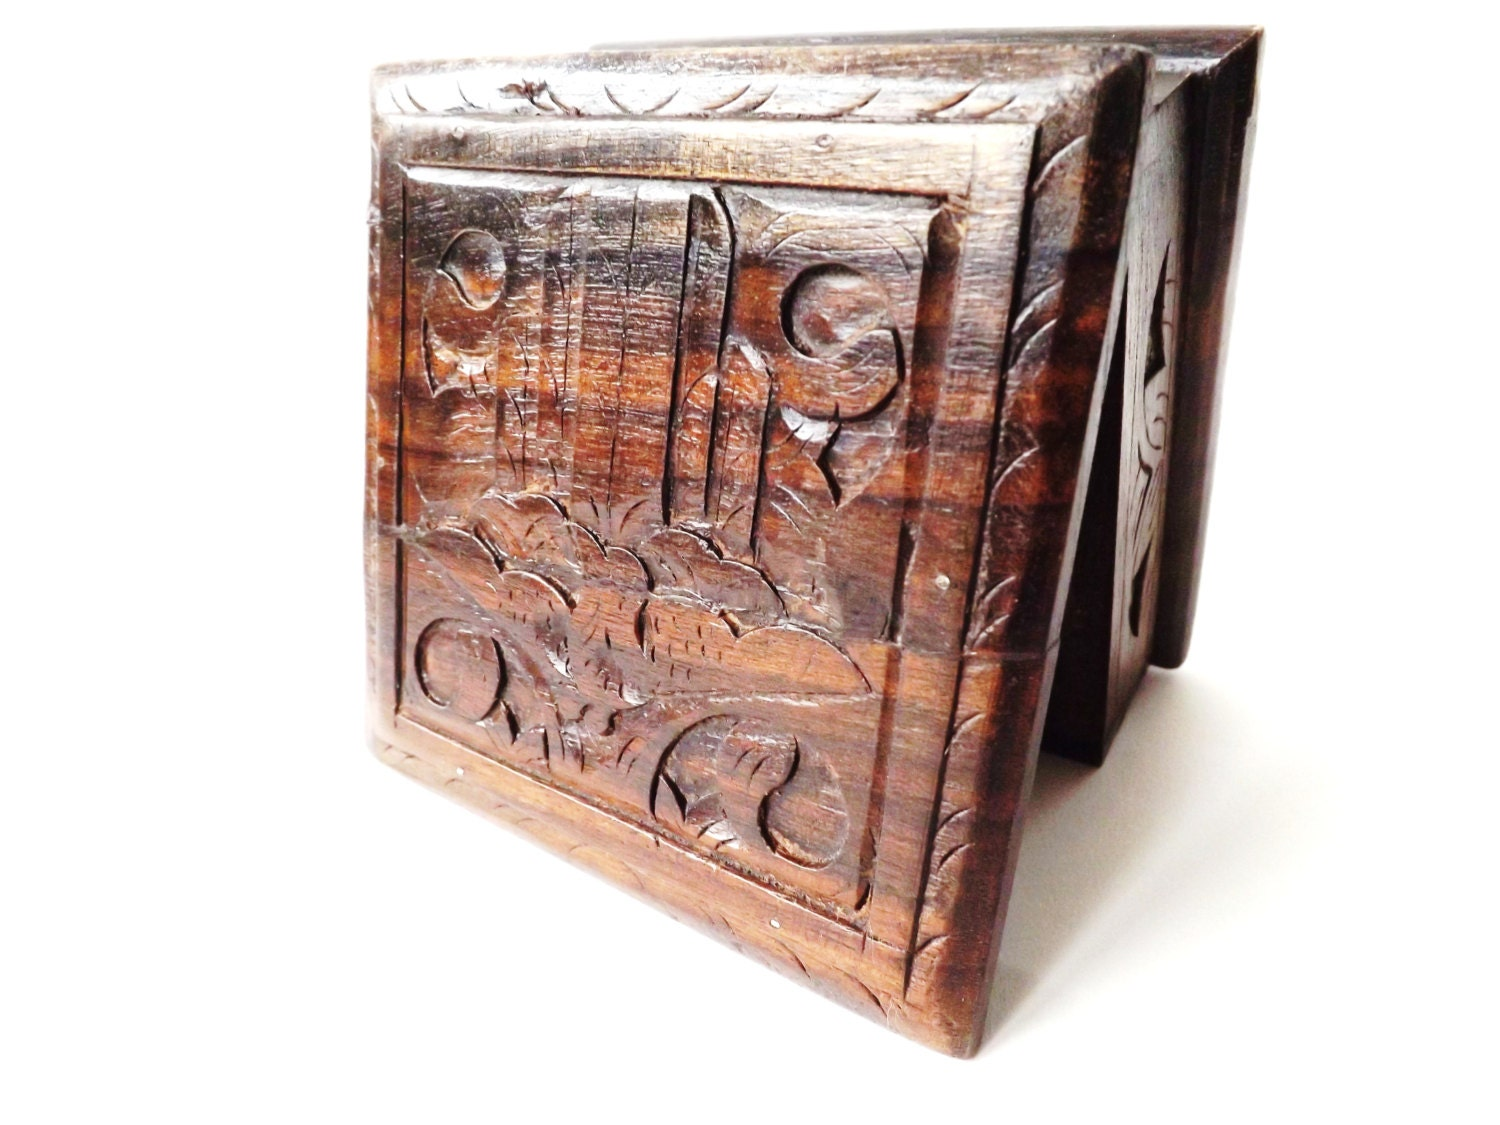 wood box small wooden jewelry box cuff links storage male. Black Bedroom Furniture Sets. Home Design Ideas